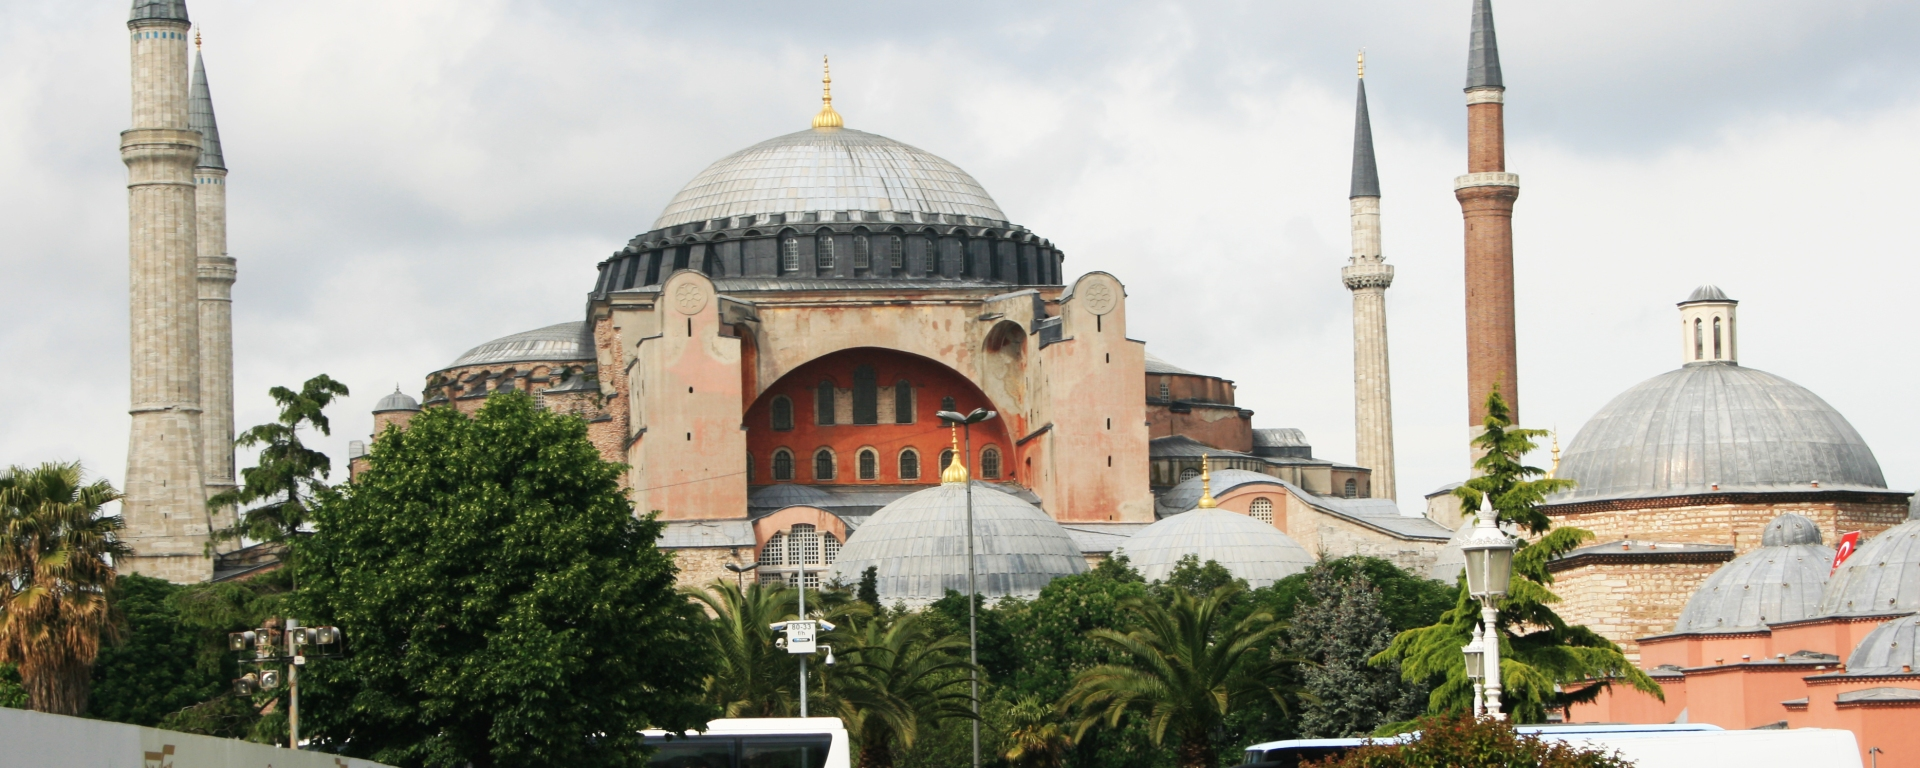 Istanbul photography, Istanbul photos, Hagia Sophia, Aya Sophia, travel photography, travel photos